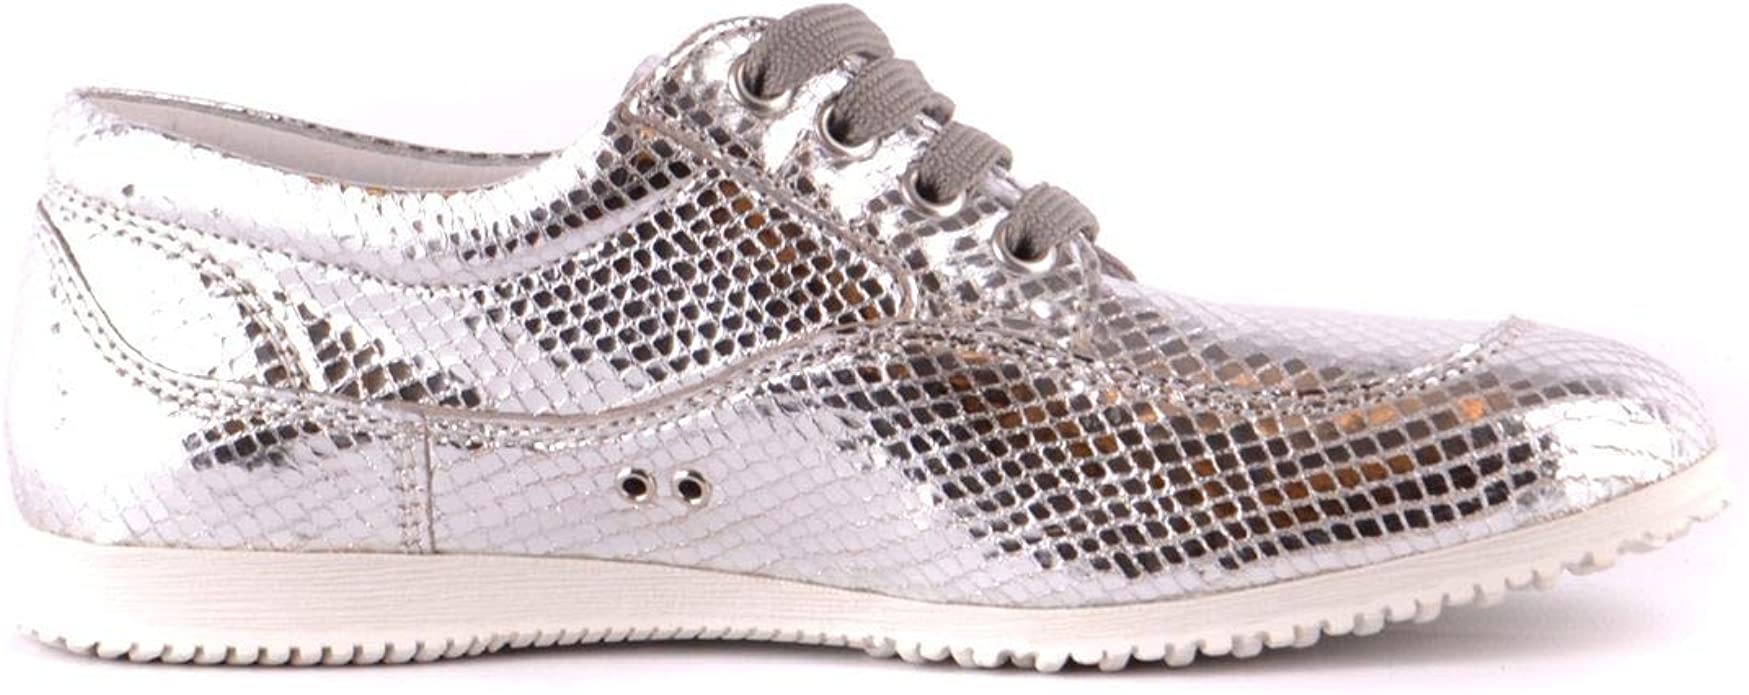 Luxury Fashion | Hogan Mujer MCBI37342 Plata Zapatillas | Temporada Outlet: Amazon.es: Zapatos y complementos